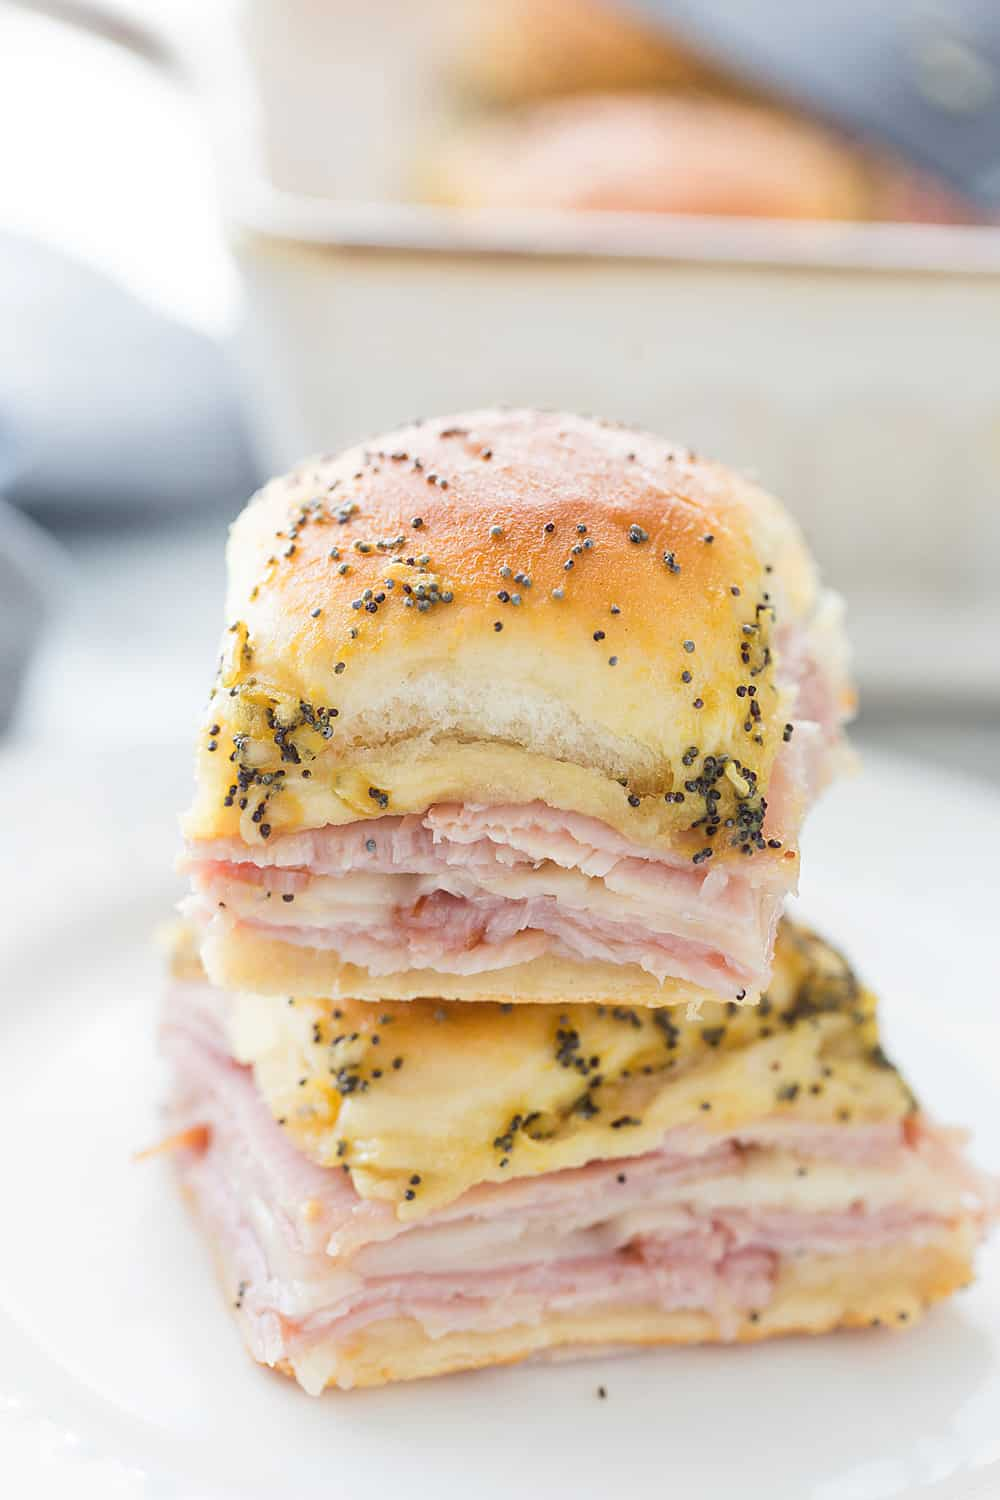 Hawaiian Ham & Cheese Sliders - Need a tasty way to use leftover ham or a recipe that'll feed a crowd? Look no further than Hawaiian ham and cheese sliders!